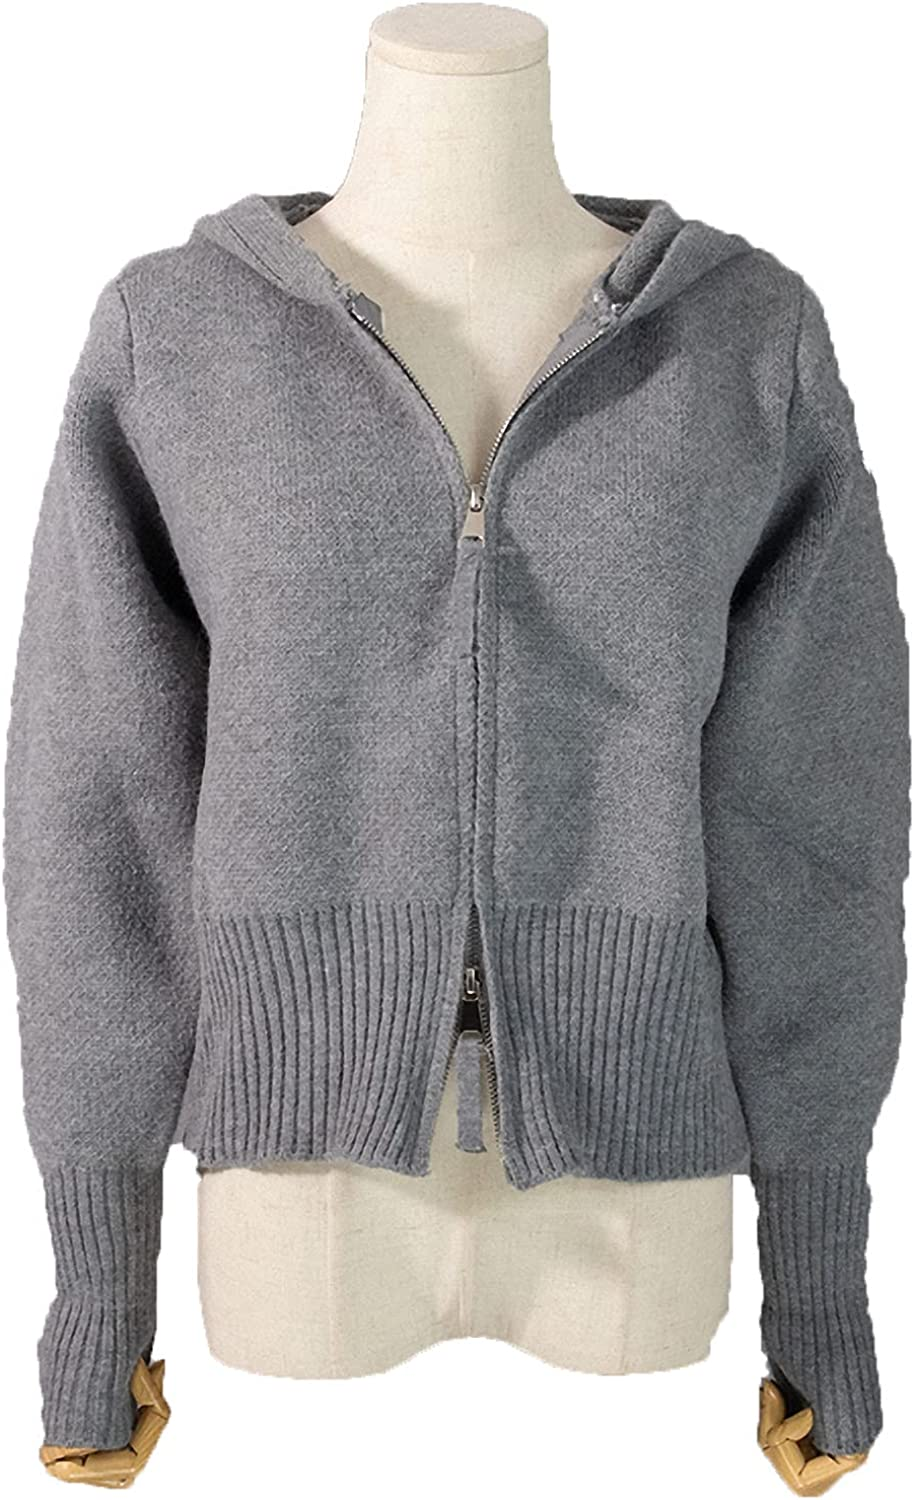 Barsly Winter Spring Women Sweaters Short Cardigans Zipper Hooded Thicken Knitted Wild Lady Top